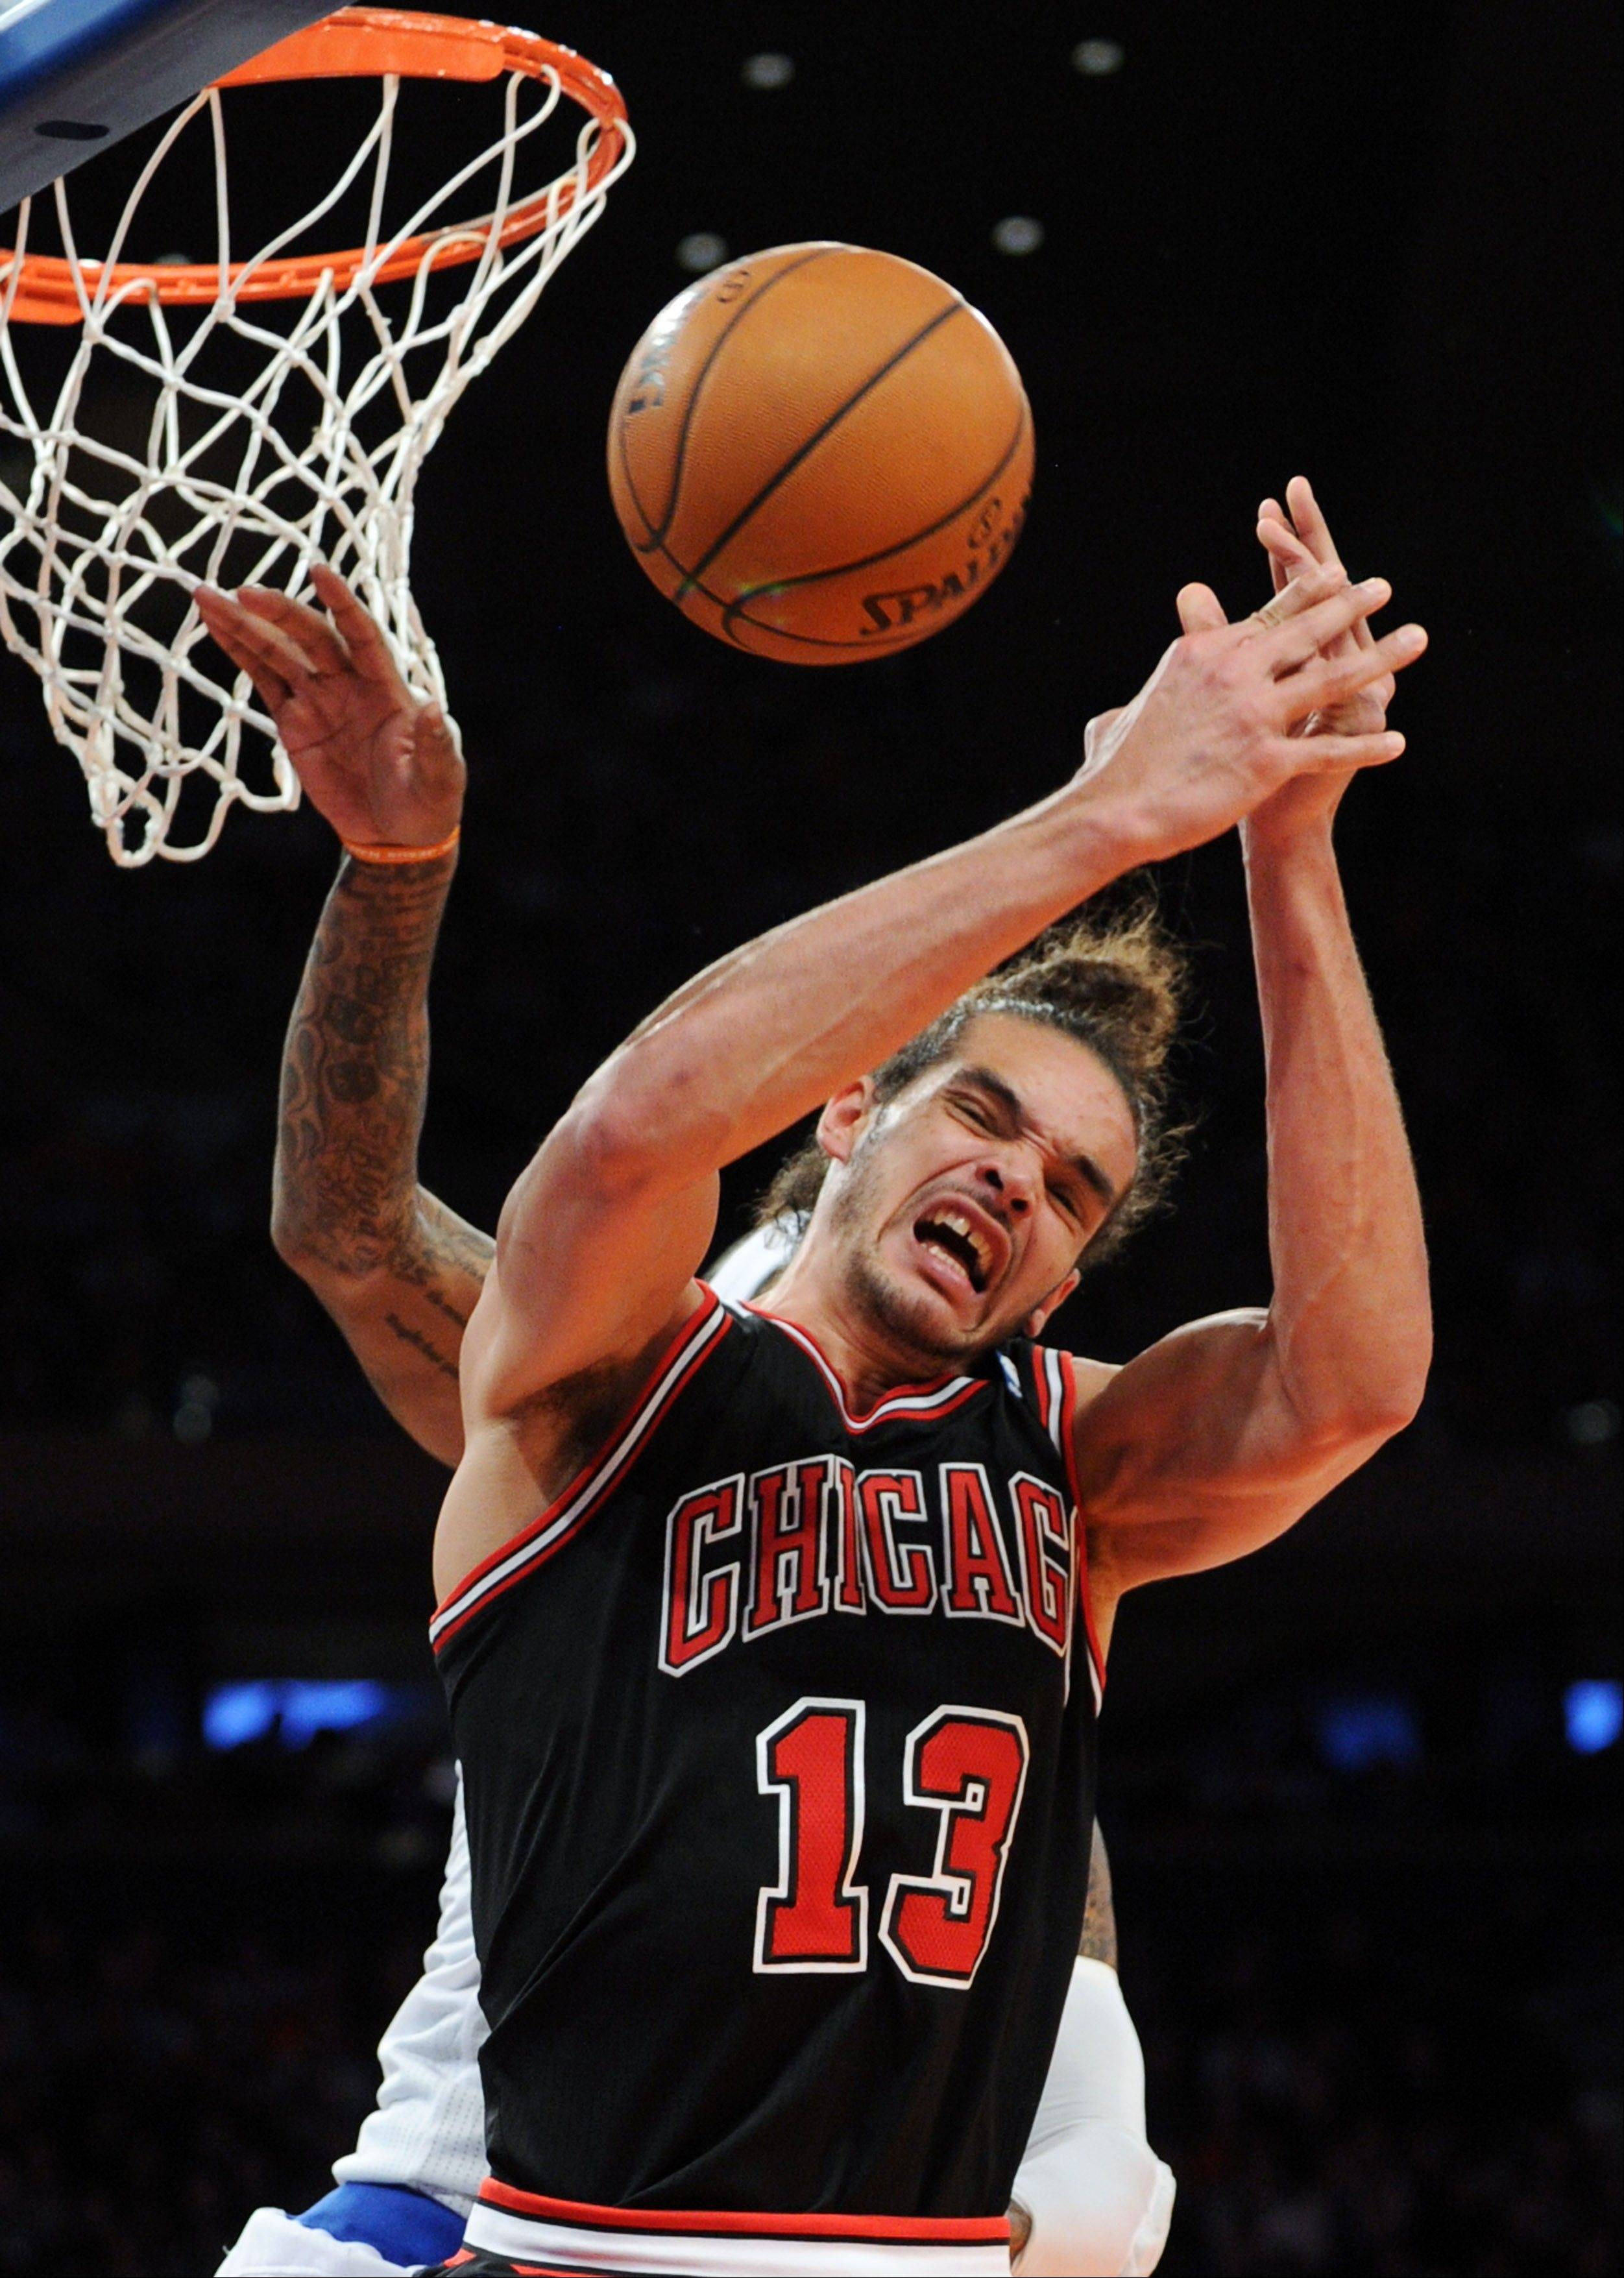 Chicago Bulls' Joakim Noah loses the ball as New York Knicks' J.R. Smith, rear, swats it away during the third quarter of an NBA basketball game Friday, Jan. 11, 2013, at Madison Square Garden in New York. The Bulls defeated the Knicks 108-101.